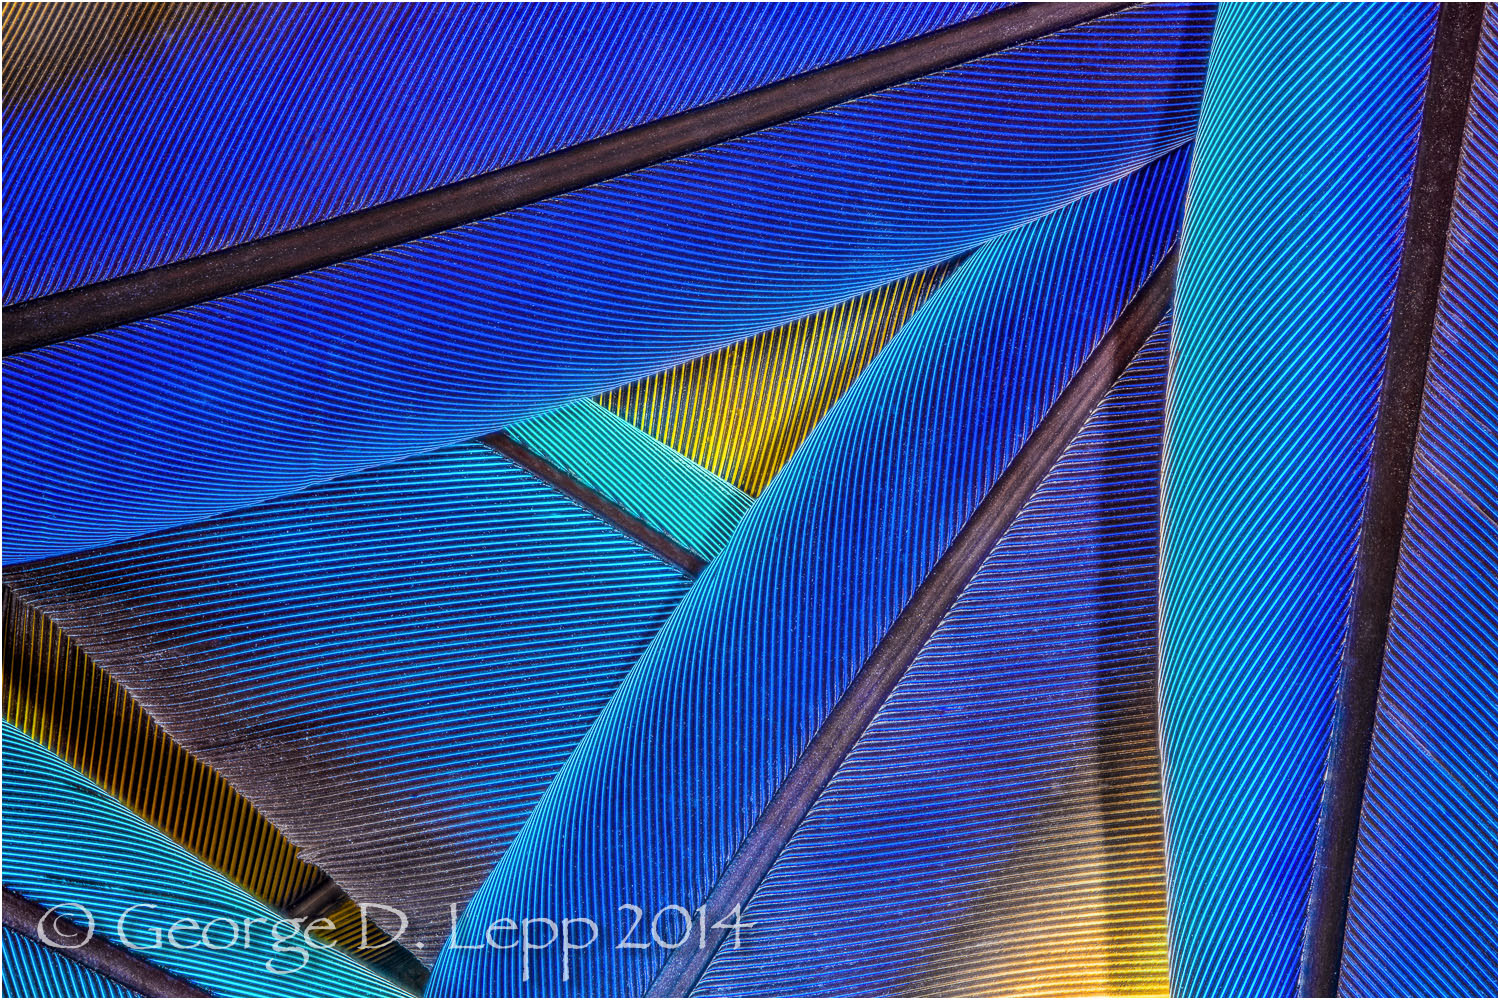 Parrot feathers. © George D. Lepp 2014  B-FE-MA-0002